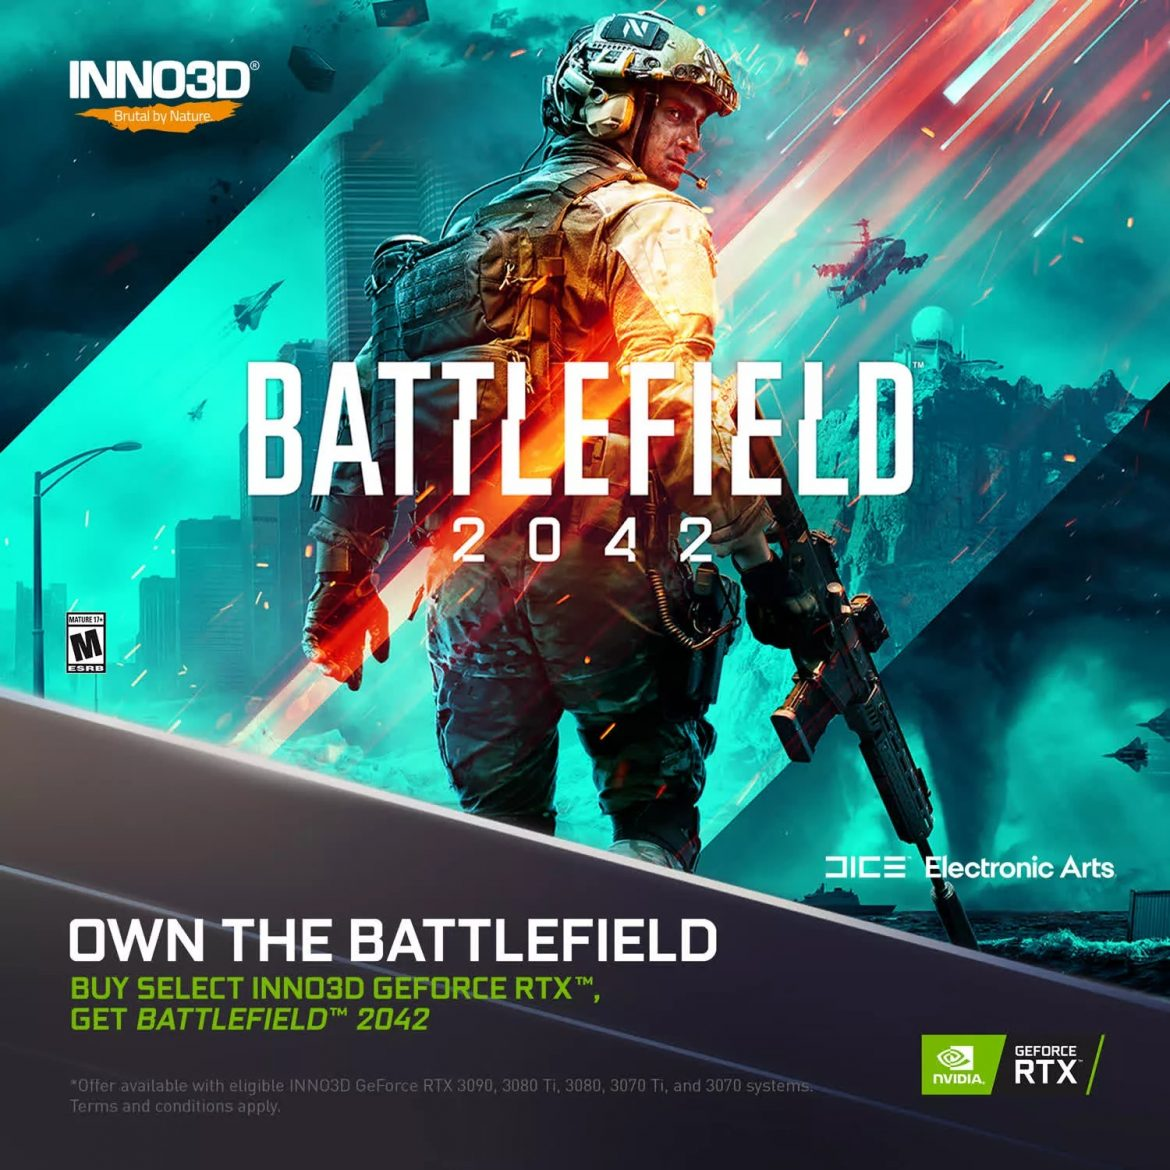 Nvidia is giving away free copies of Battlefield 2042 with its RTX 30 Series bundle